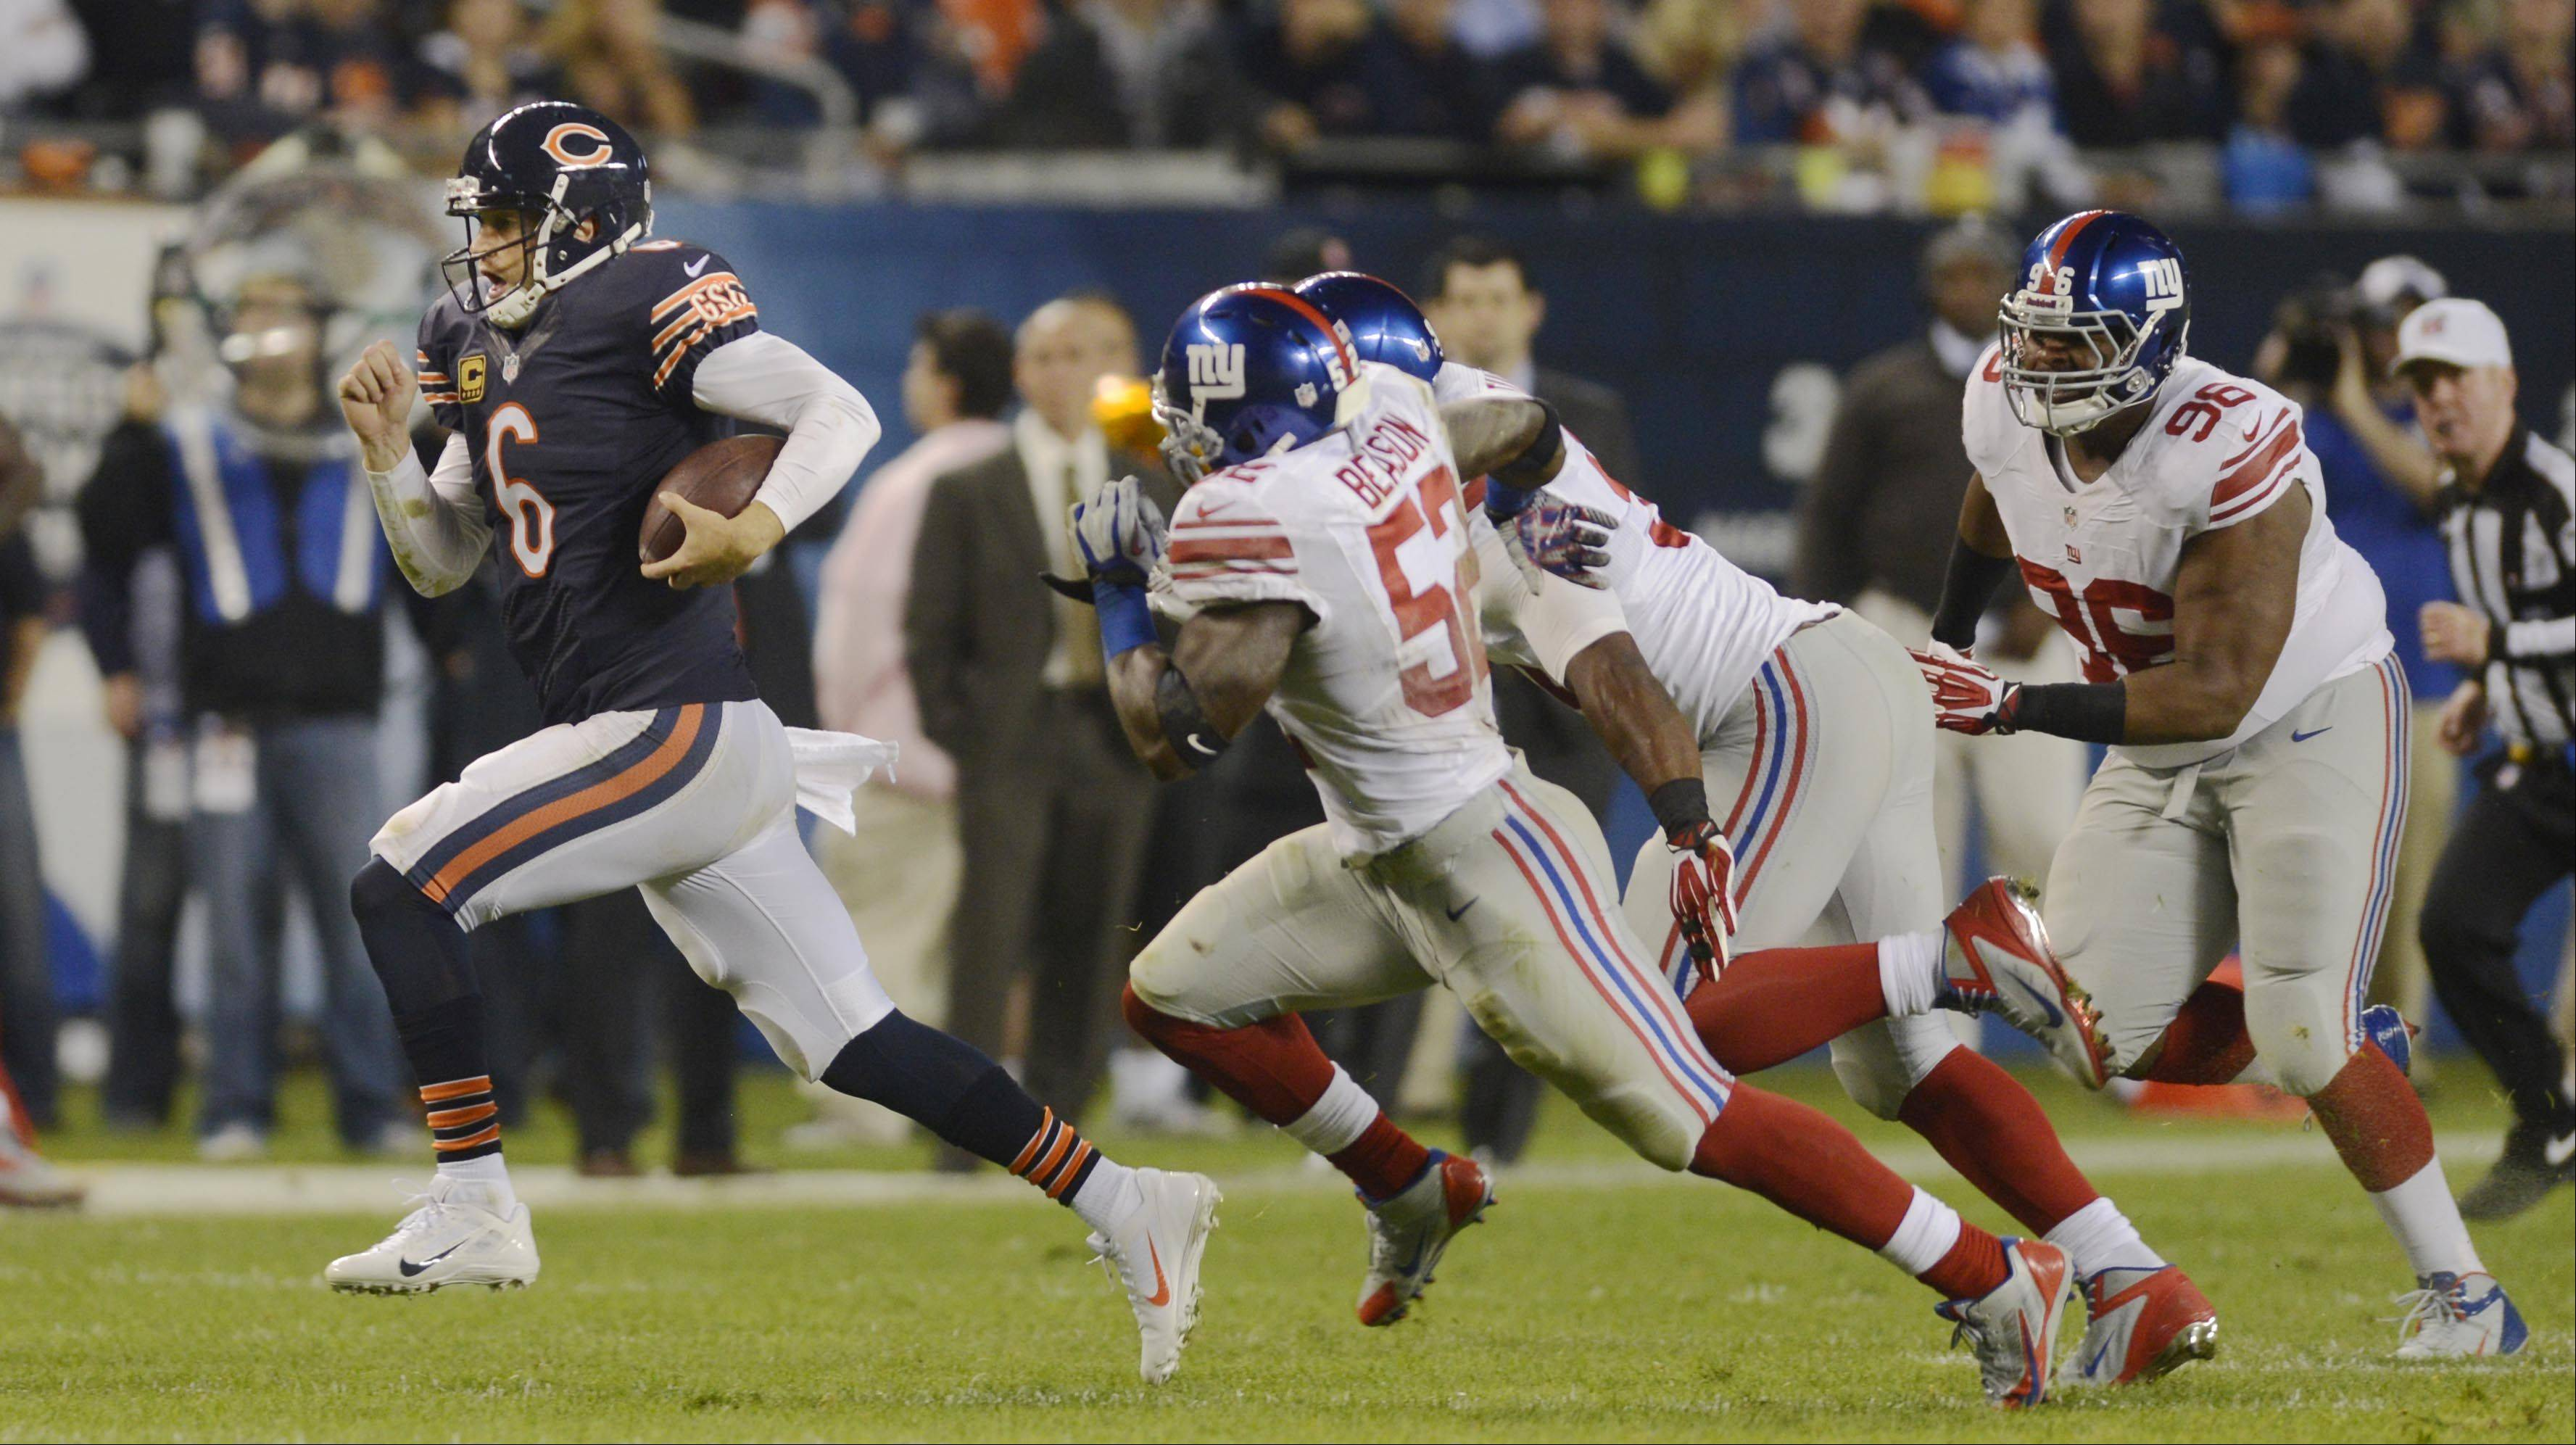 Bears quarterback Jay Cutler is chased to the sidelines by the New York Giants Thursday night at Soldier Field in Chicago.